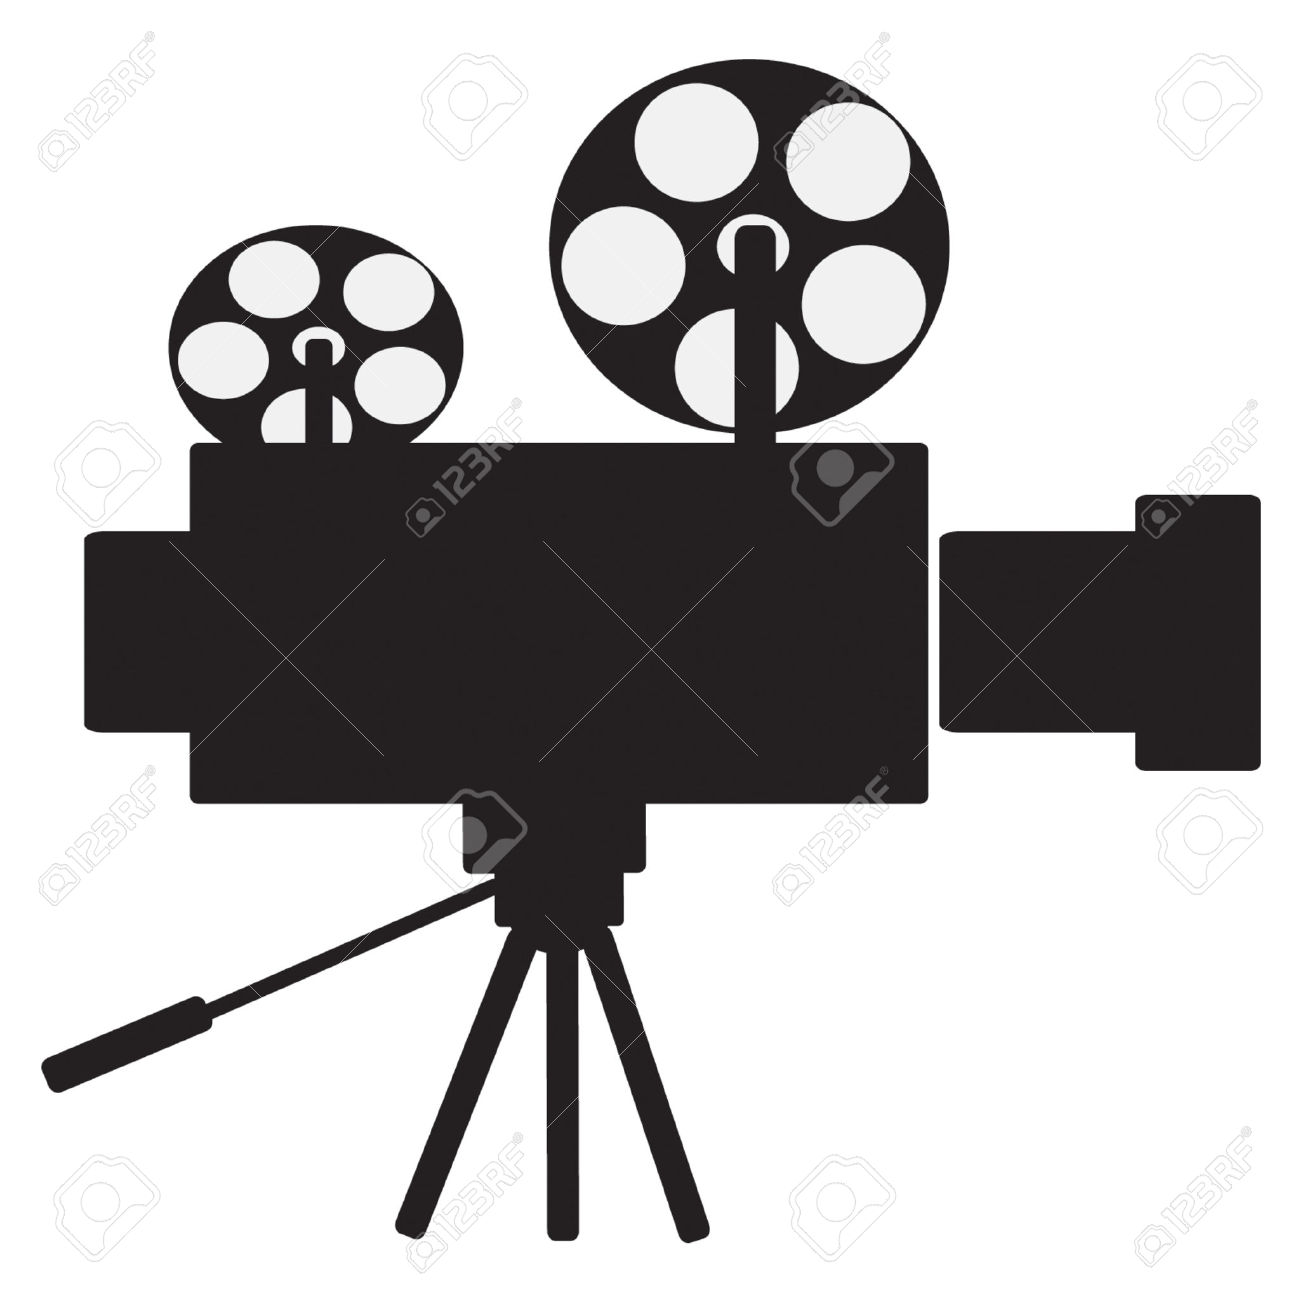 Film projector clipart - Clipground